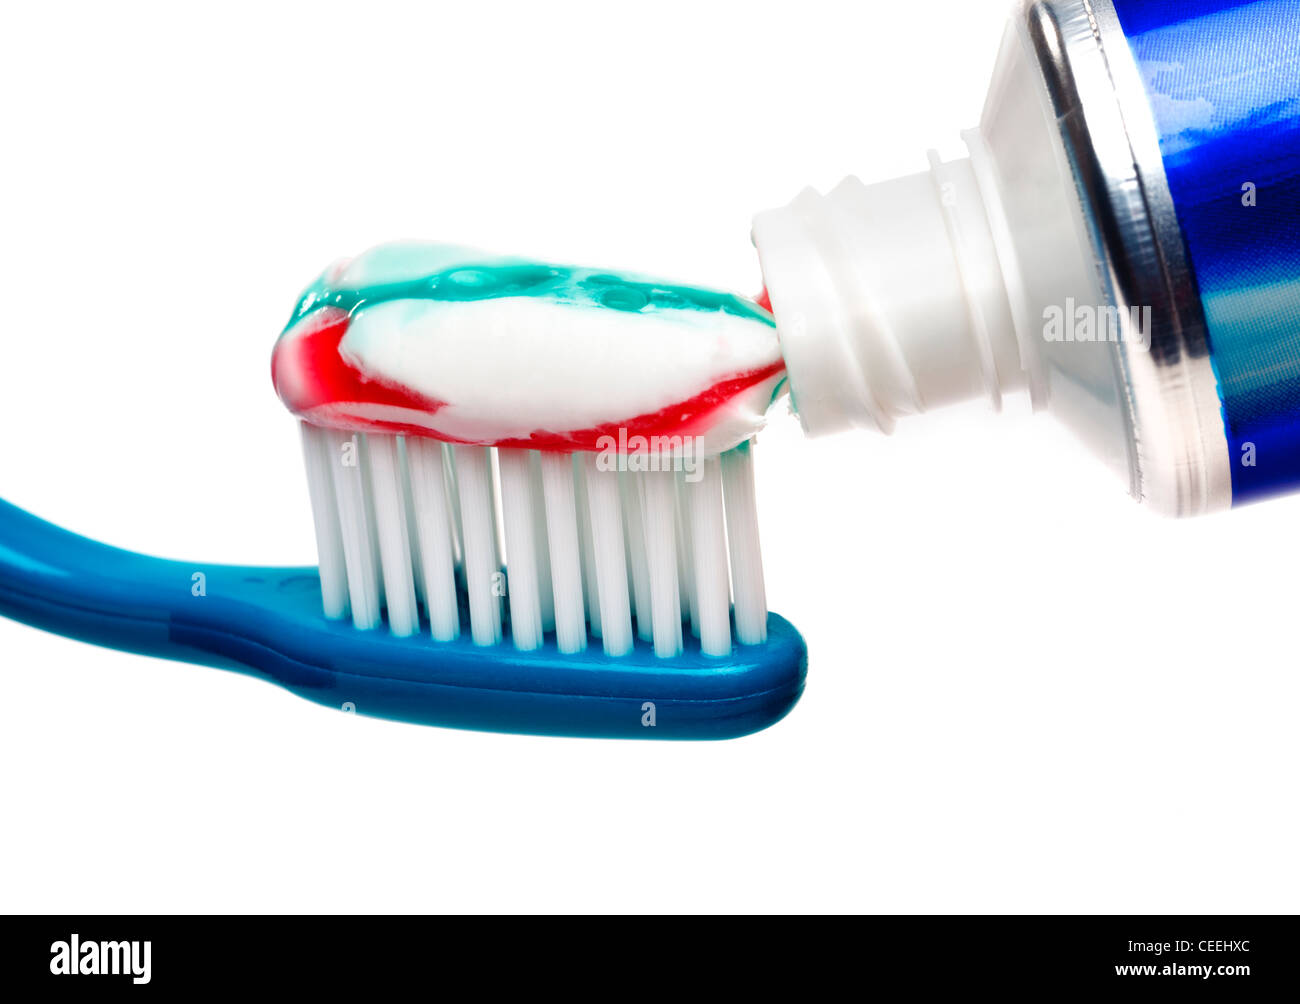 Tooth brush and toothpaste tube - Stock Image